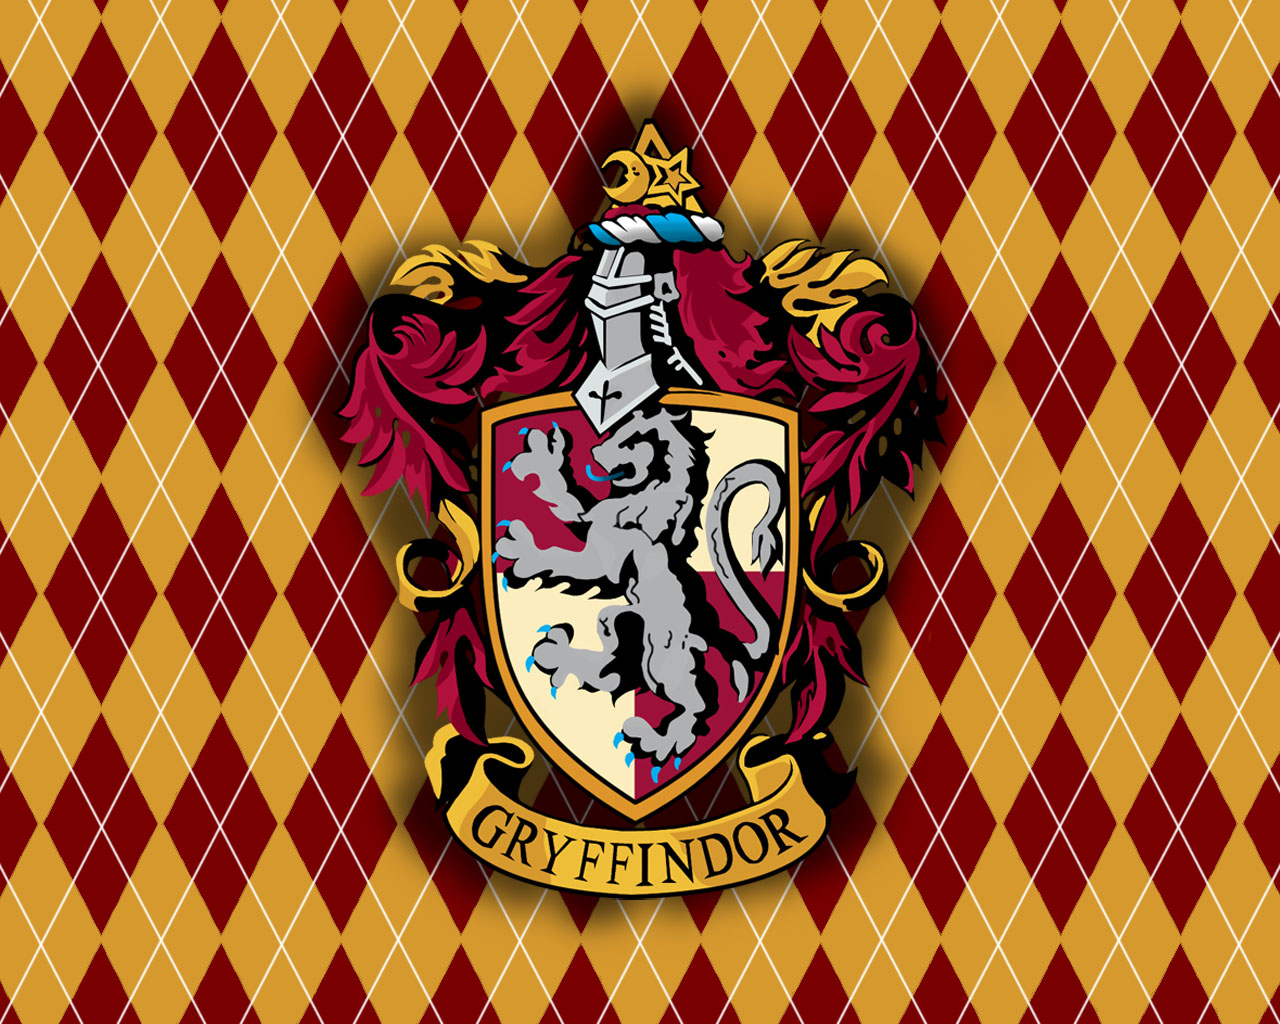 Gryffindor Wallpapers 1280x1024